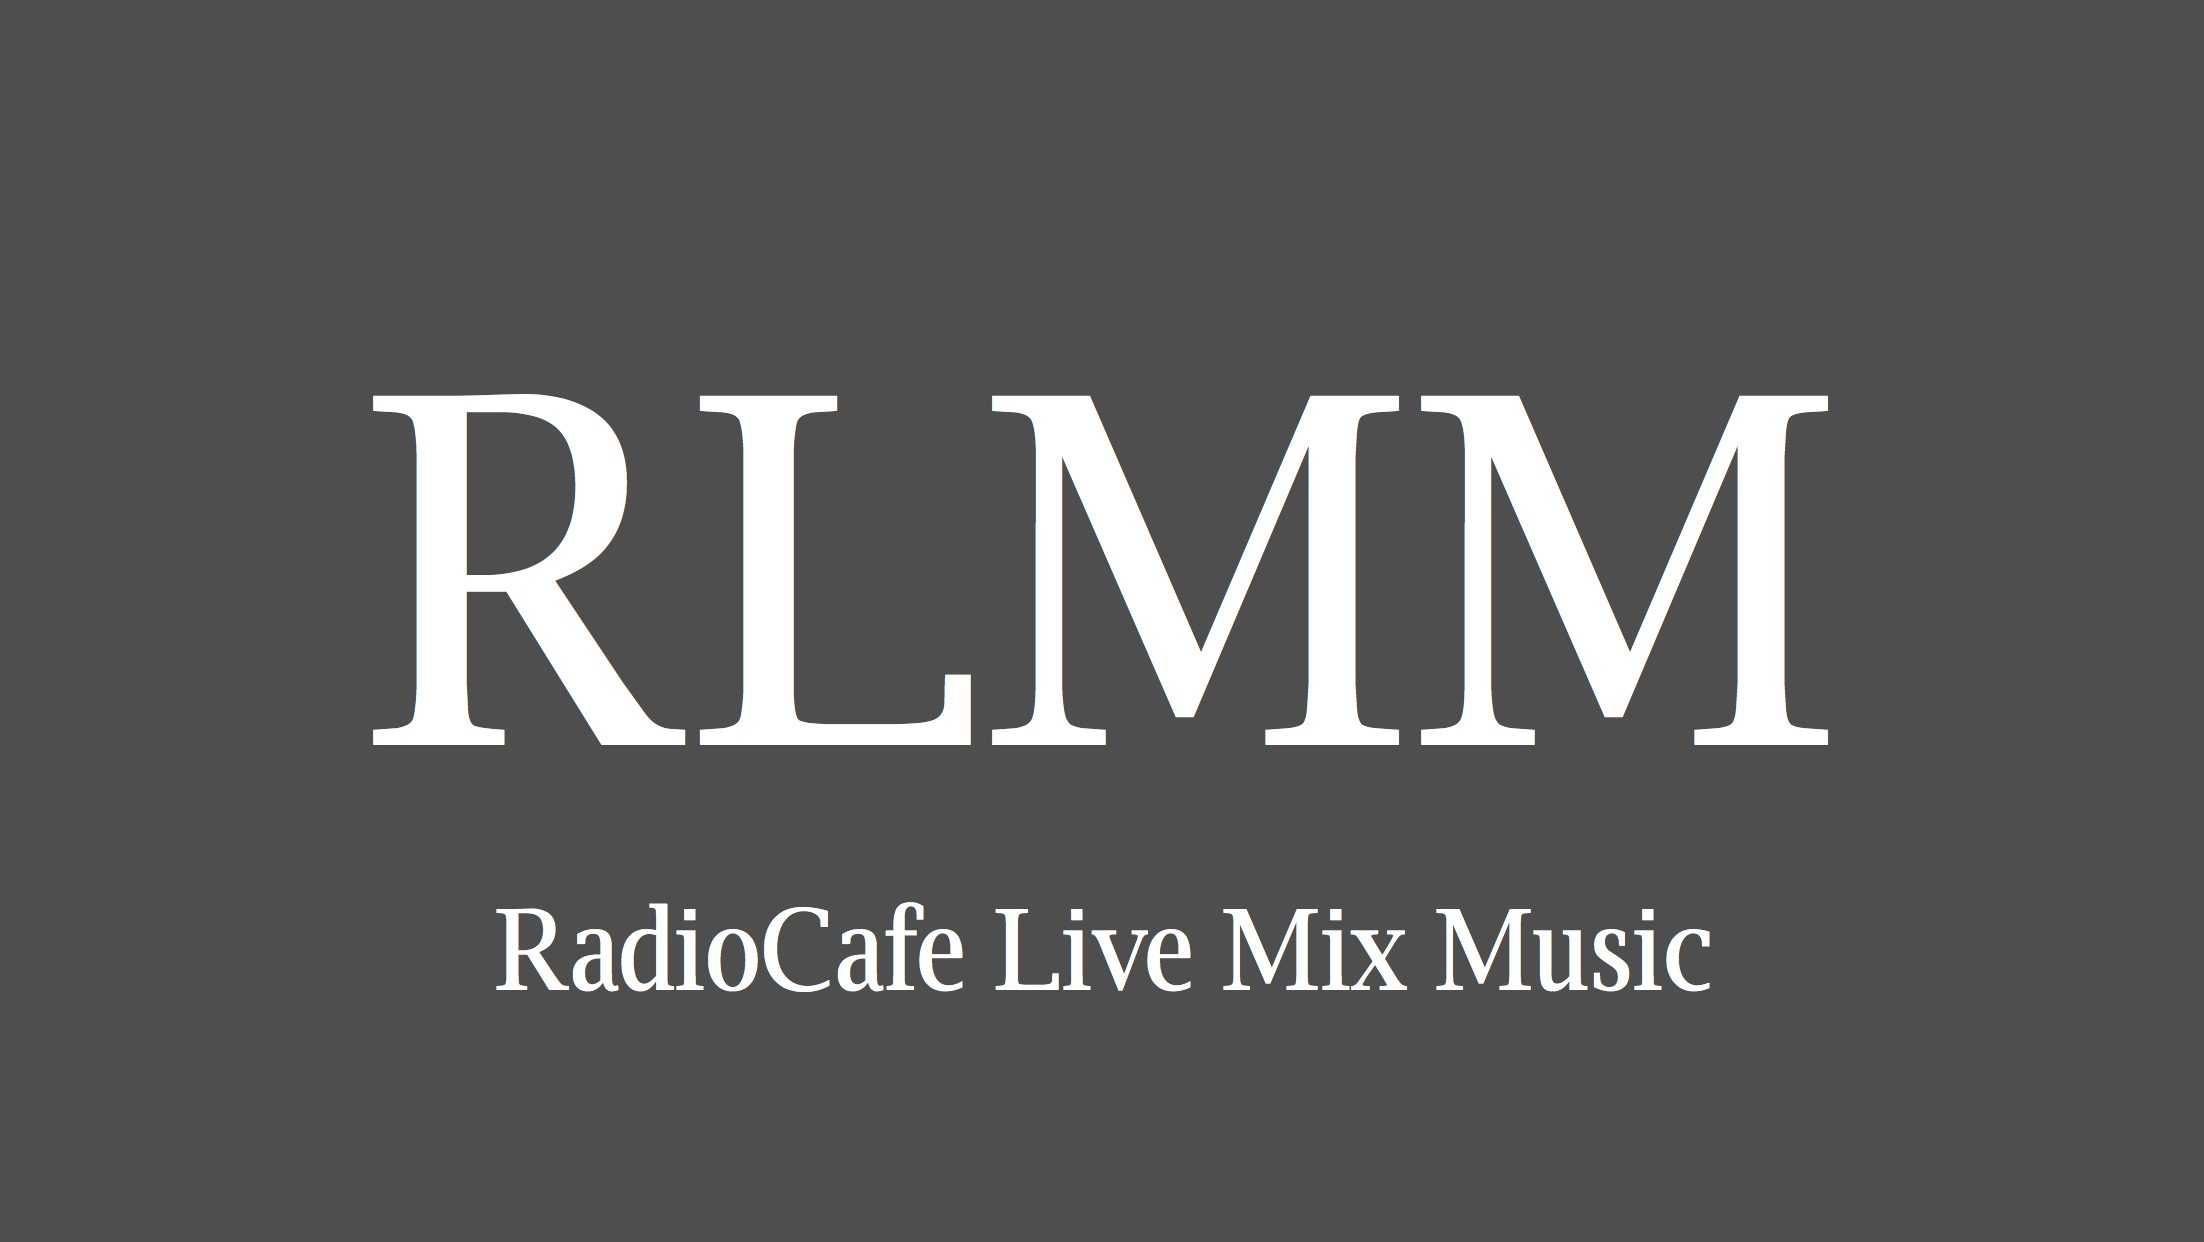 RadioCafe Live Mix Music